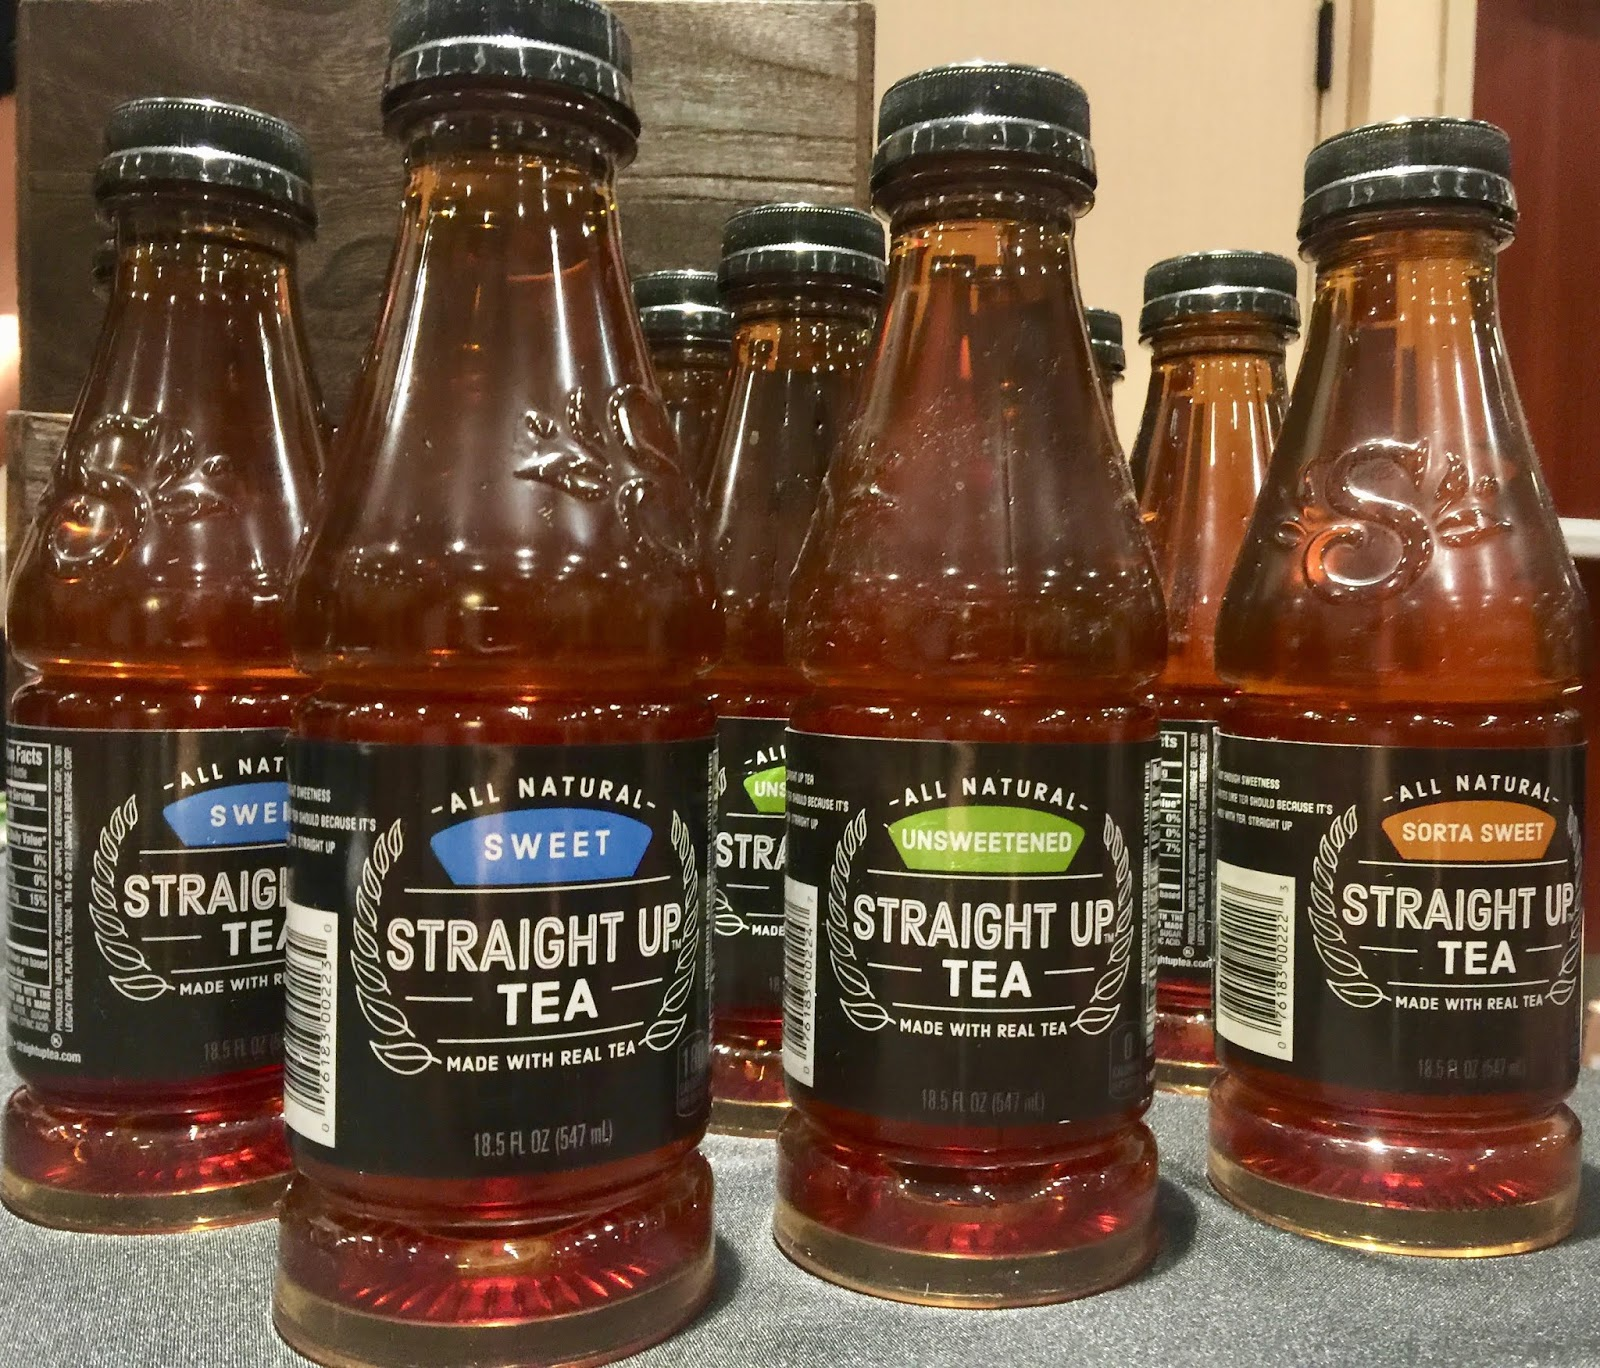 5109ecb16c8 STRAIGHT UP TEA-smartly labels the sweet level directly...sorta sweet